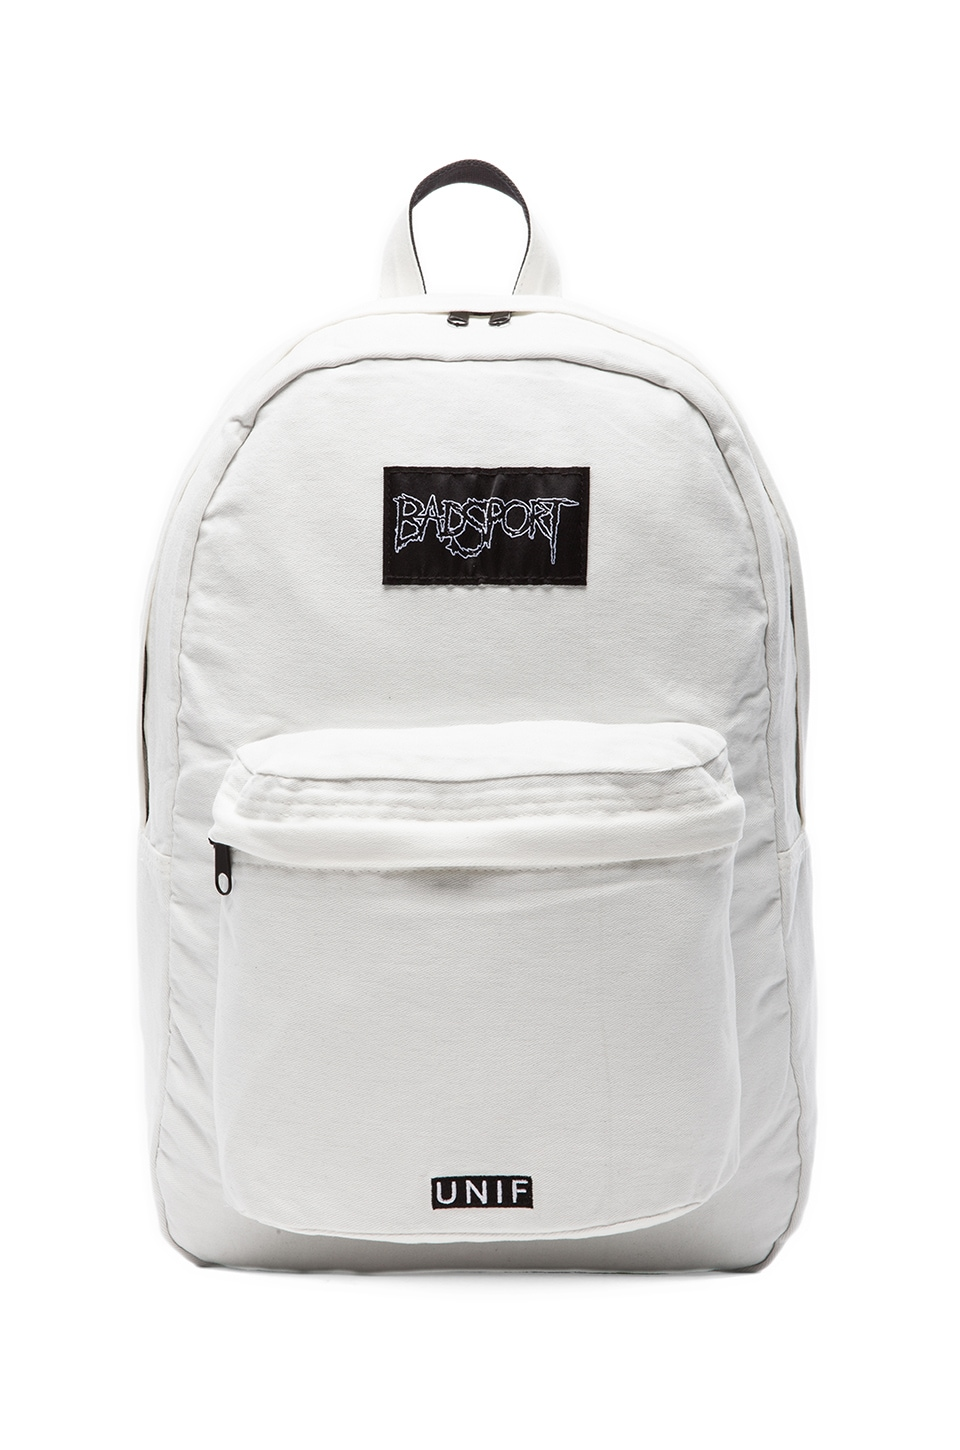 UNIF Badsport Backpack in Off White